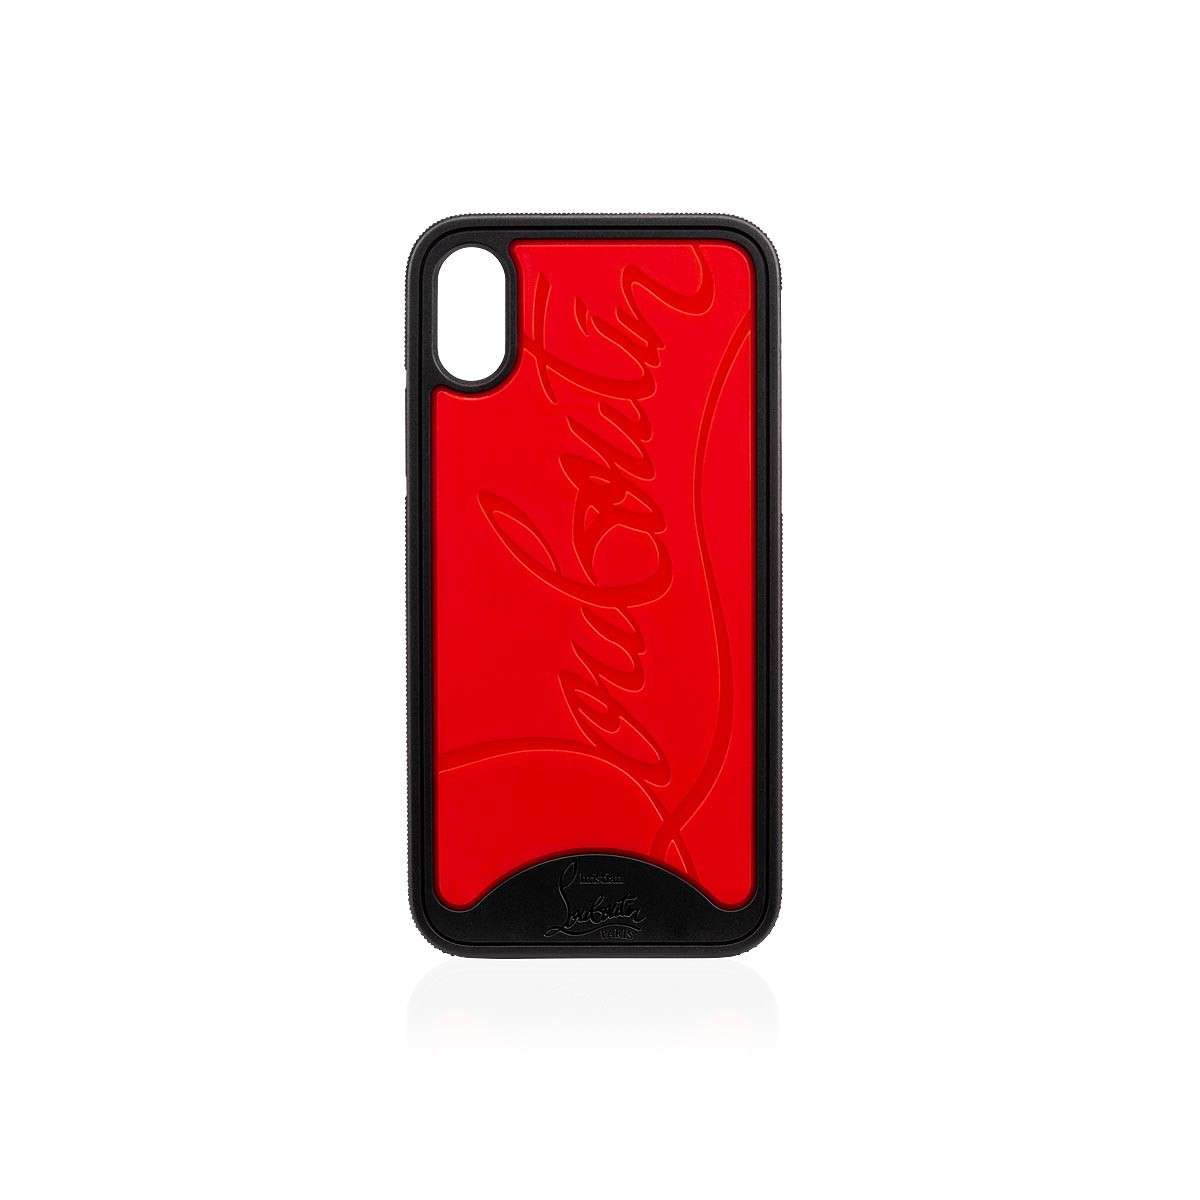 0ead97ce22a Iphone X Loubiphone Red and Black Rubber - Accessories - Christian Louboutin